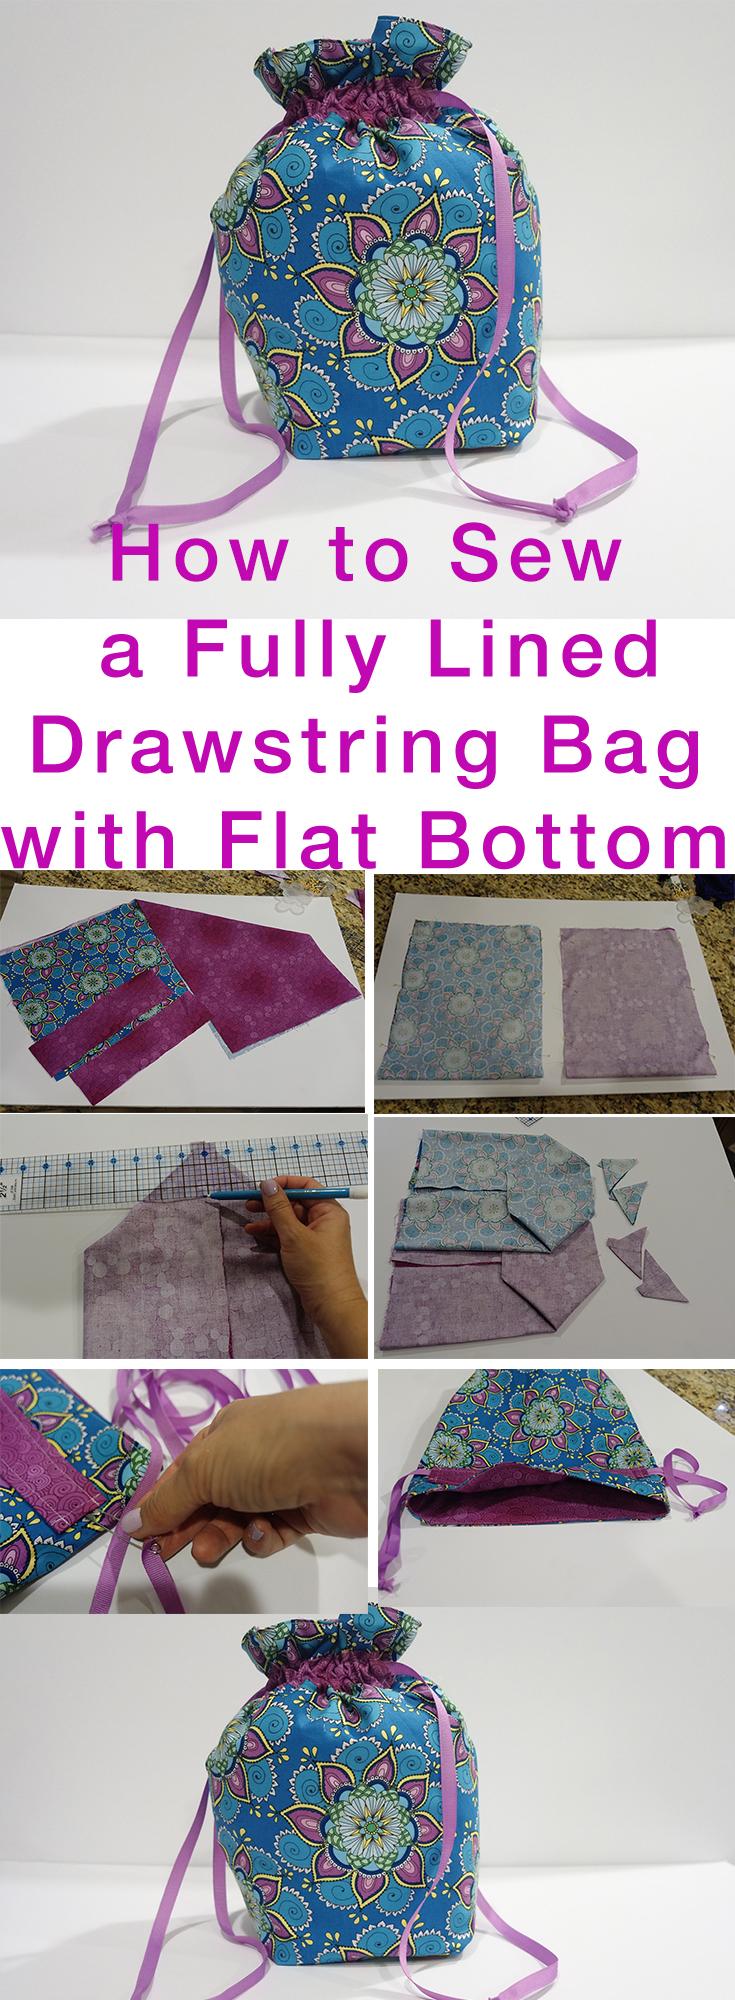 How to Sew Fully Lined, Flat Bottomed, Drawstring Bag FREE Pattern ...